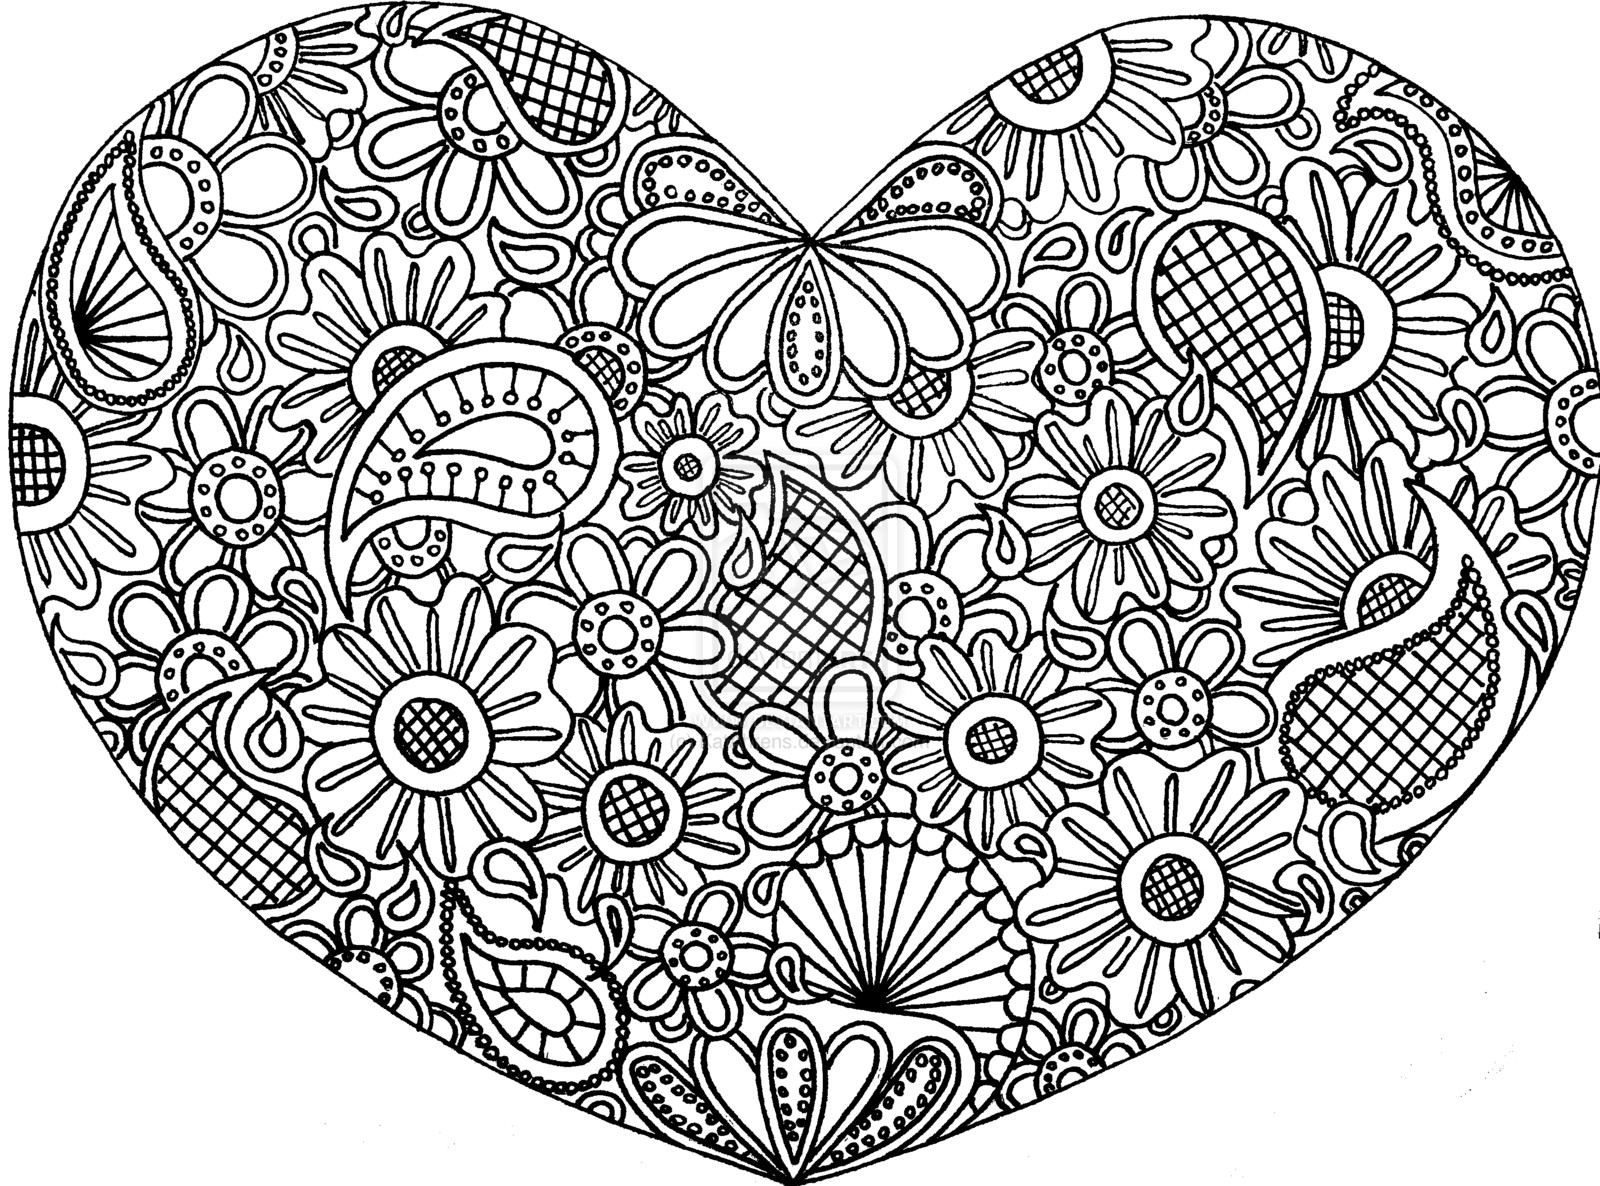 photograph about Printable Zentangle Patterns identified as Zentangle Practices Coloring Internet pages at  Cost-free